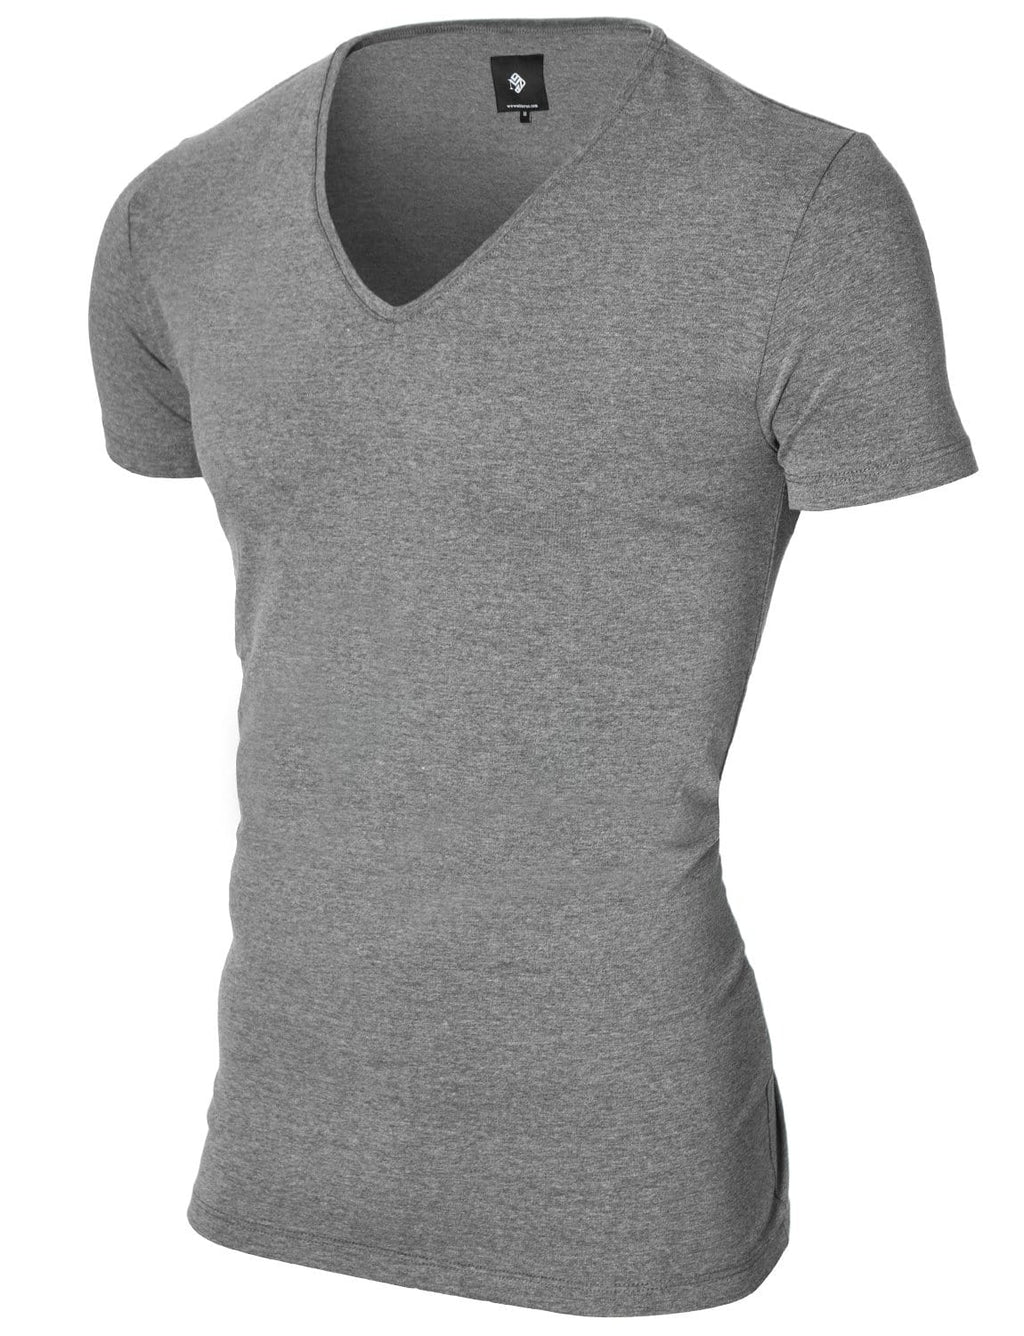 Mens basic V-neck t-shirt darkgray (MOD2001VN)